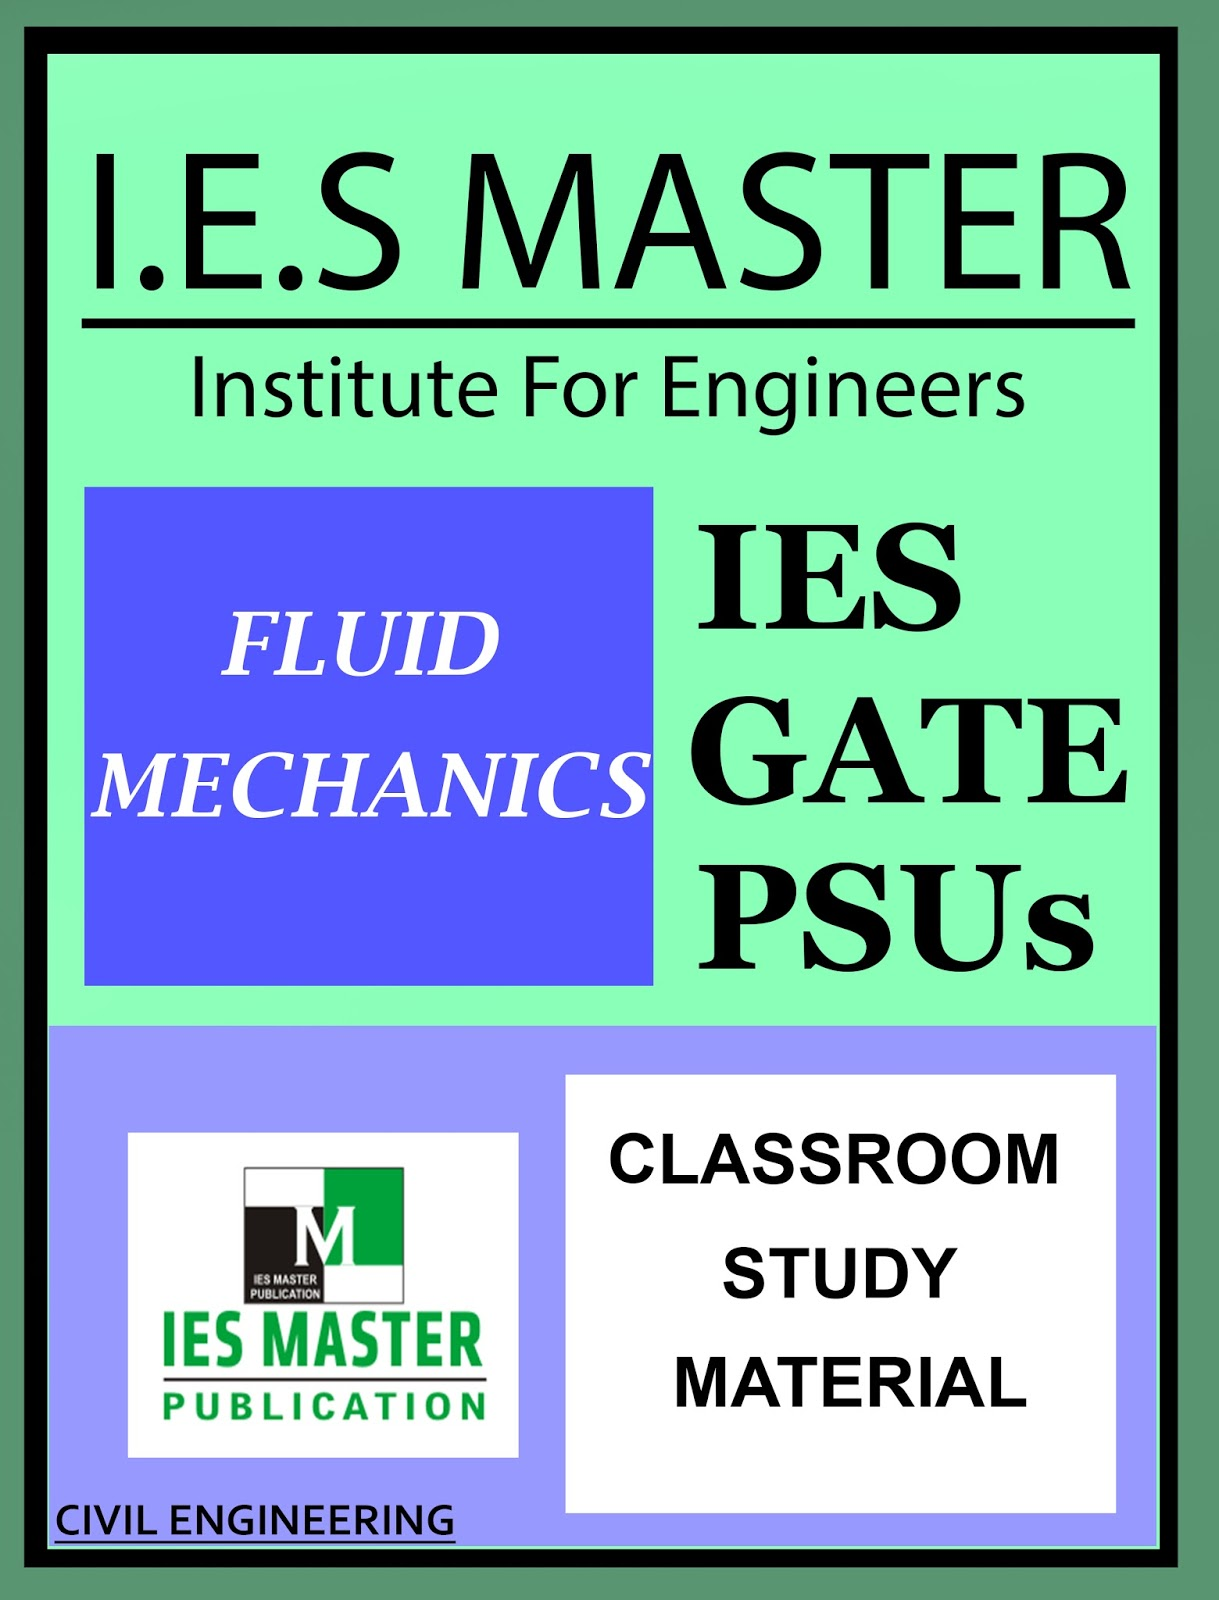 GATE MATERIAL] IES MASTER Fluid Mechanics Study Material for